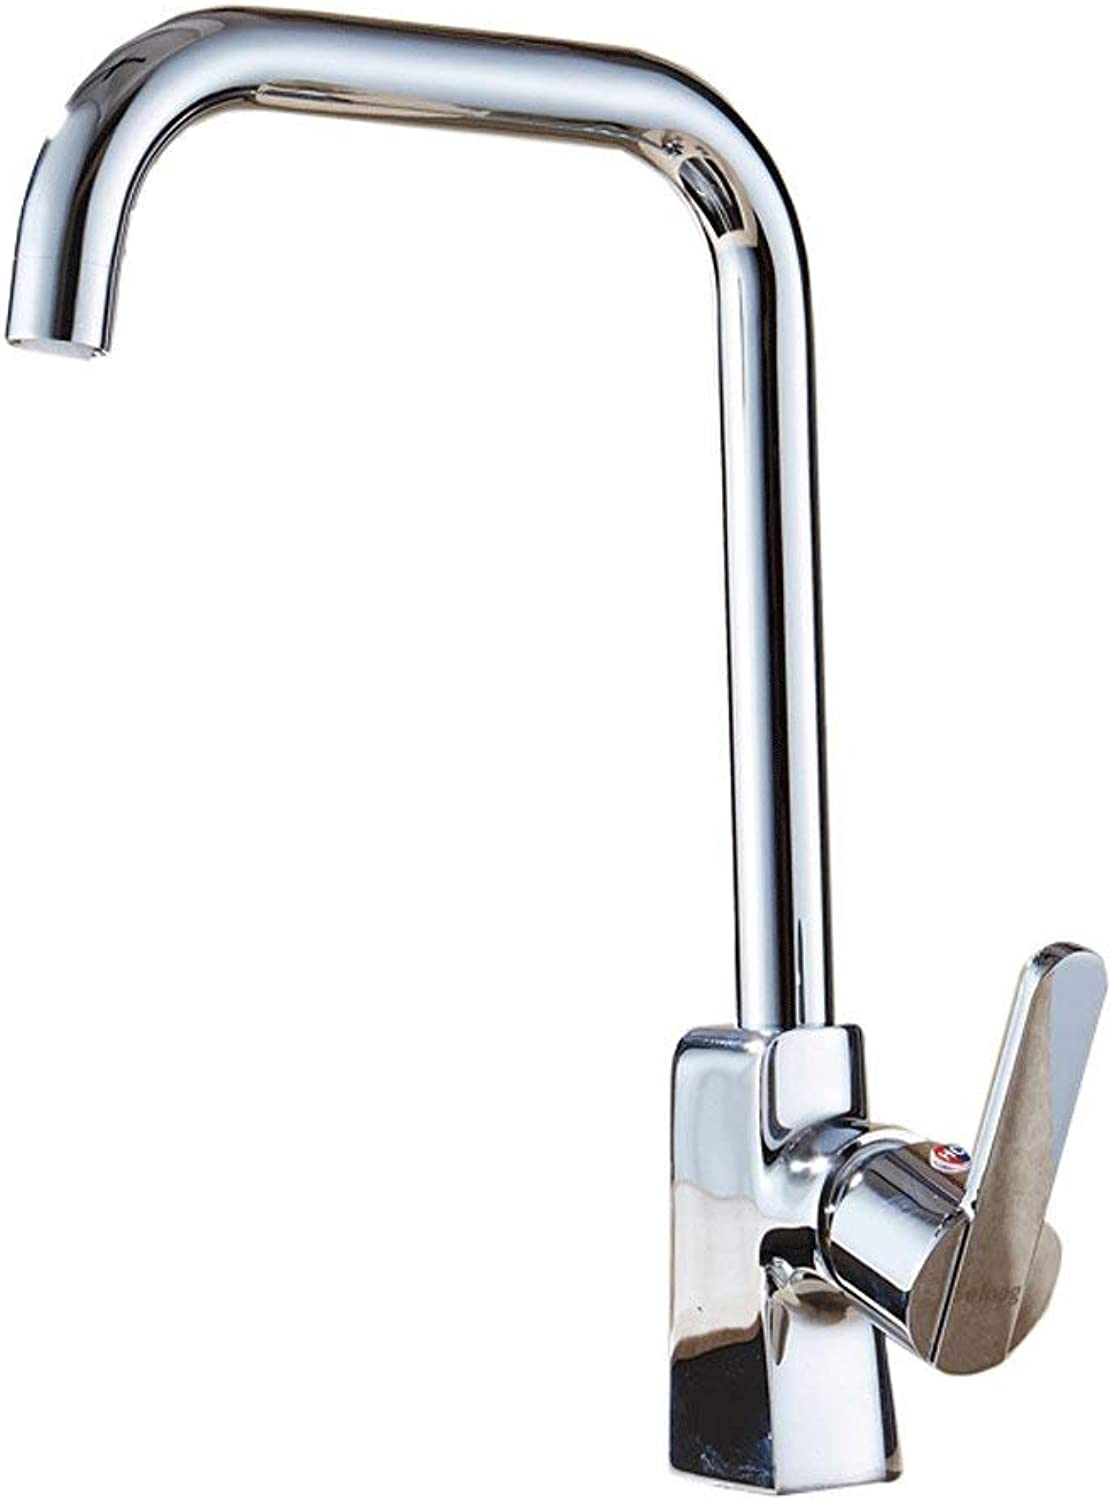 DYR Faucet Copper Faucet Kitchen Hot and Cold Water Tap redatable Faucet Brushed Stainless Steel Sink Lavatory